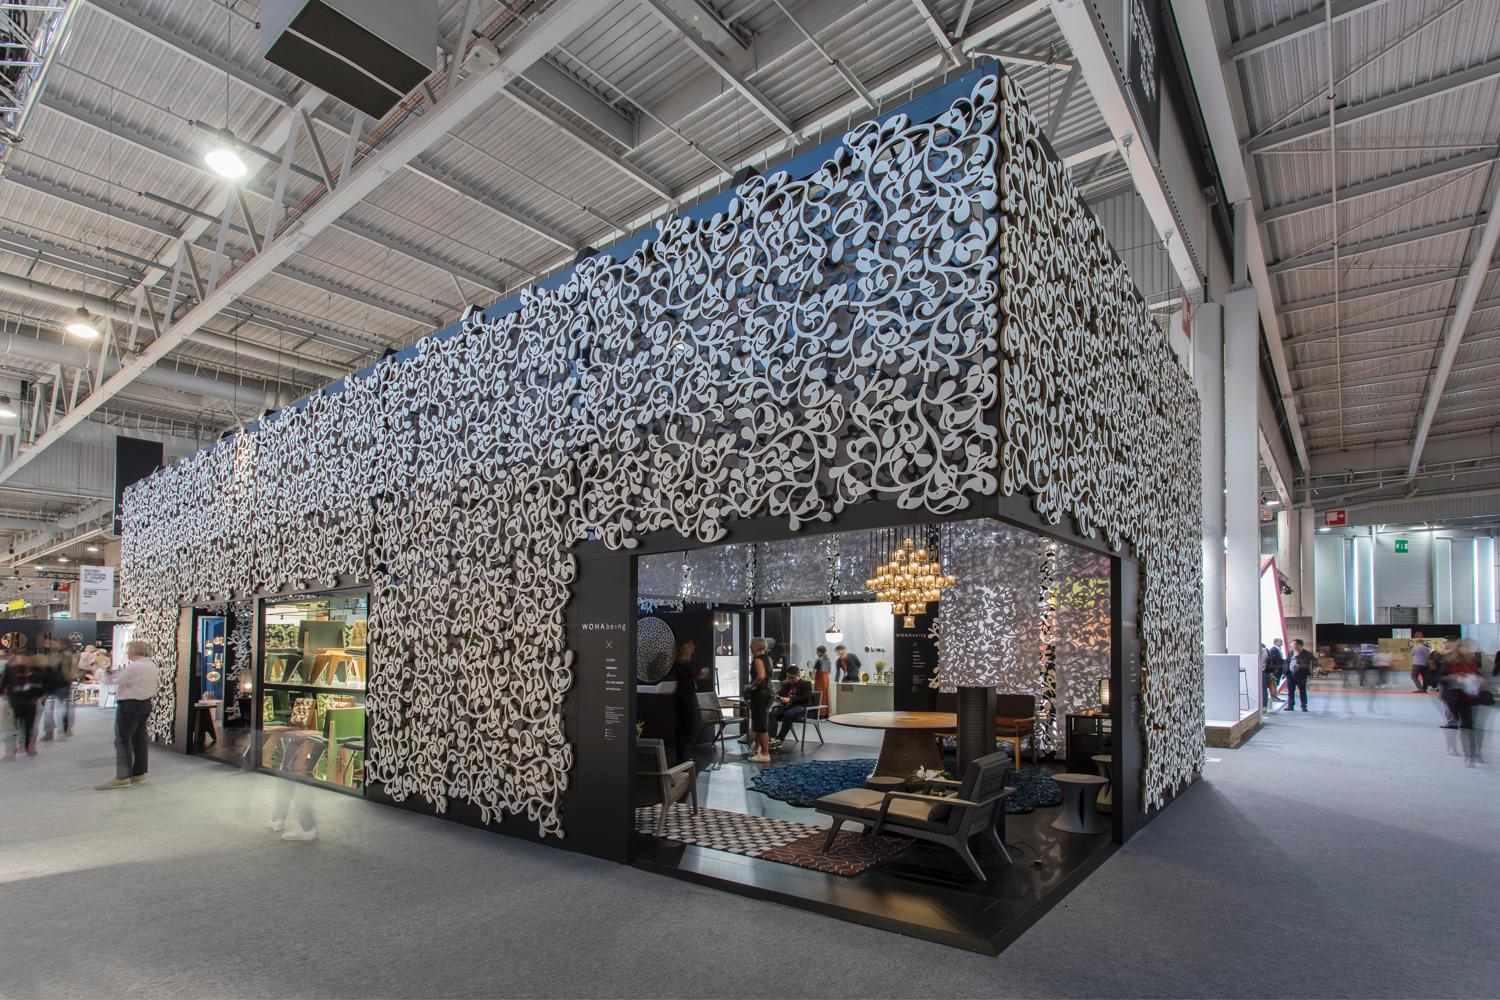 WOHAbeing debuted at Maison&Objet in September in a specially designed booth featuring a beanstalk motif / Marek Swoboda